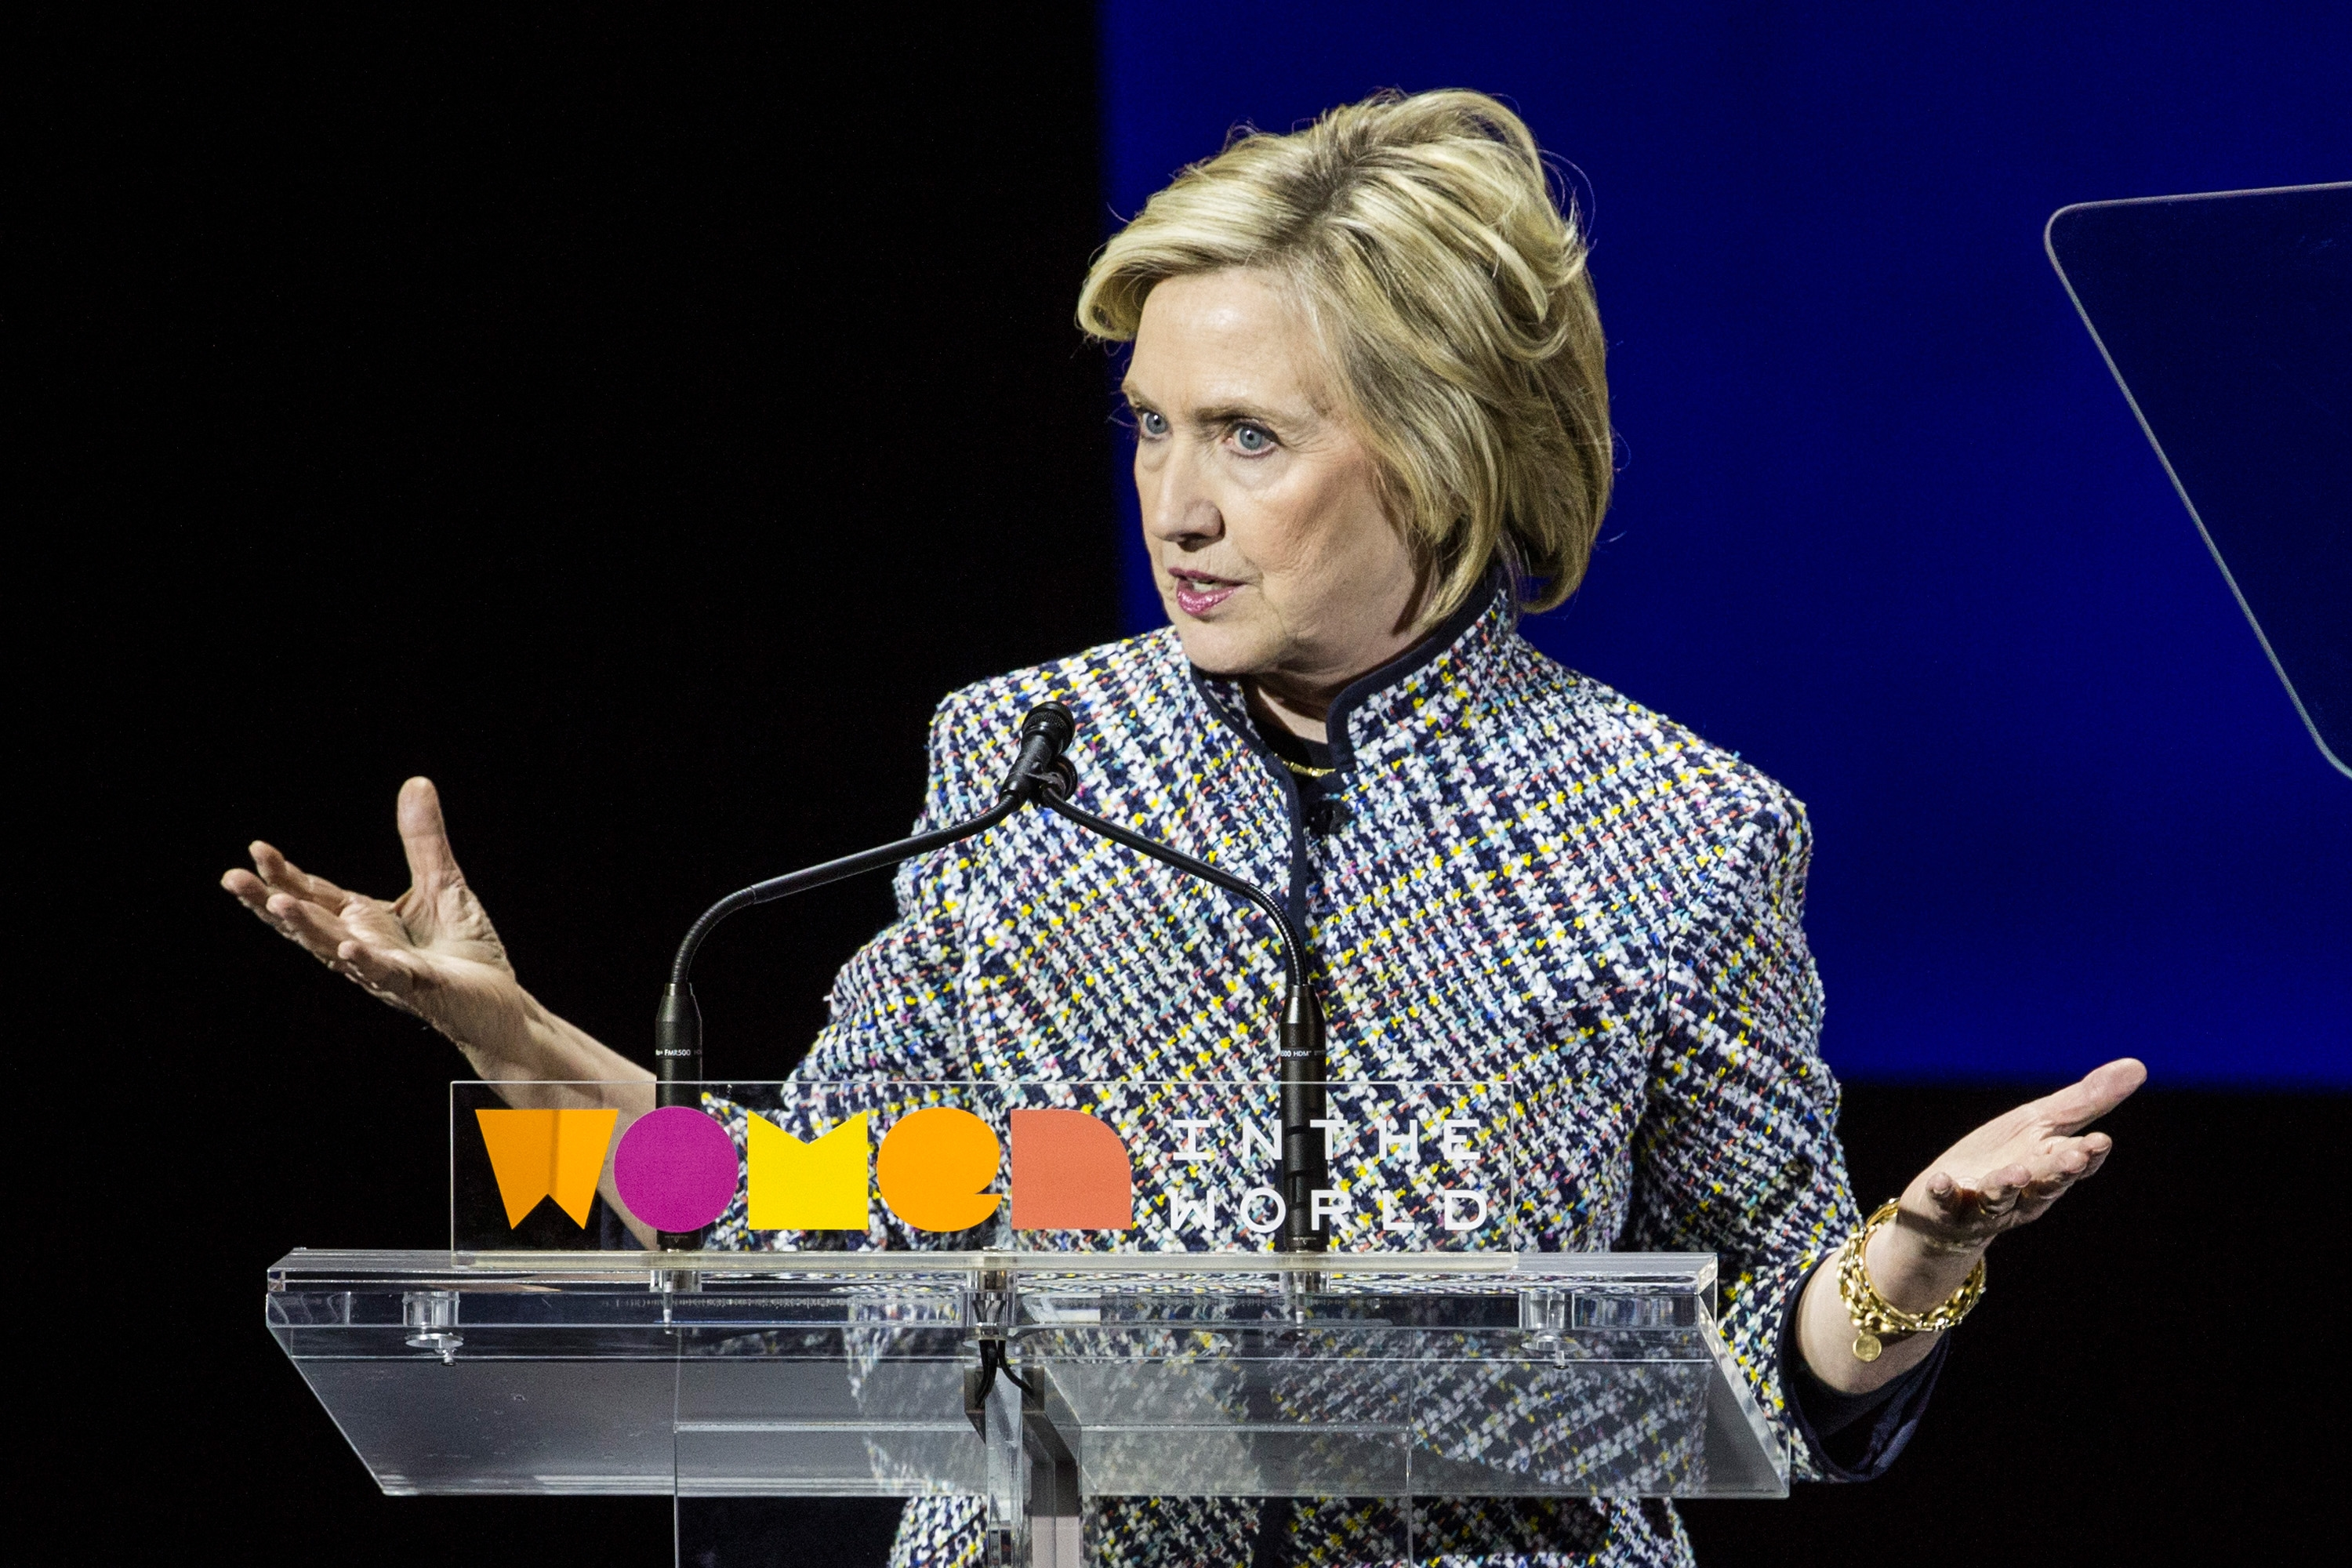 Hillary Clinton was secretary of state while her foundation was raking in millions of dollars from foreign donors. (Getty Images file photo)